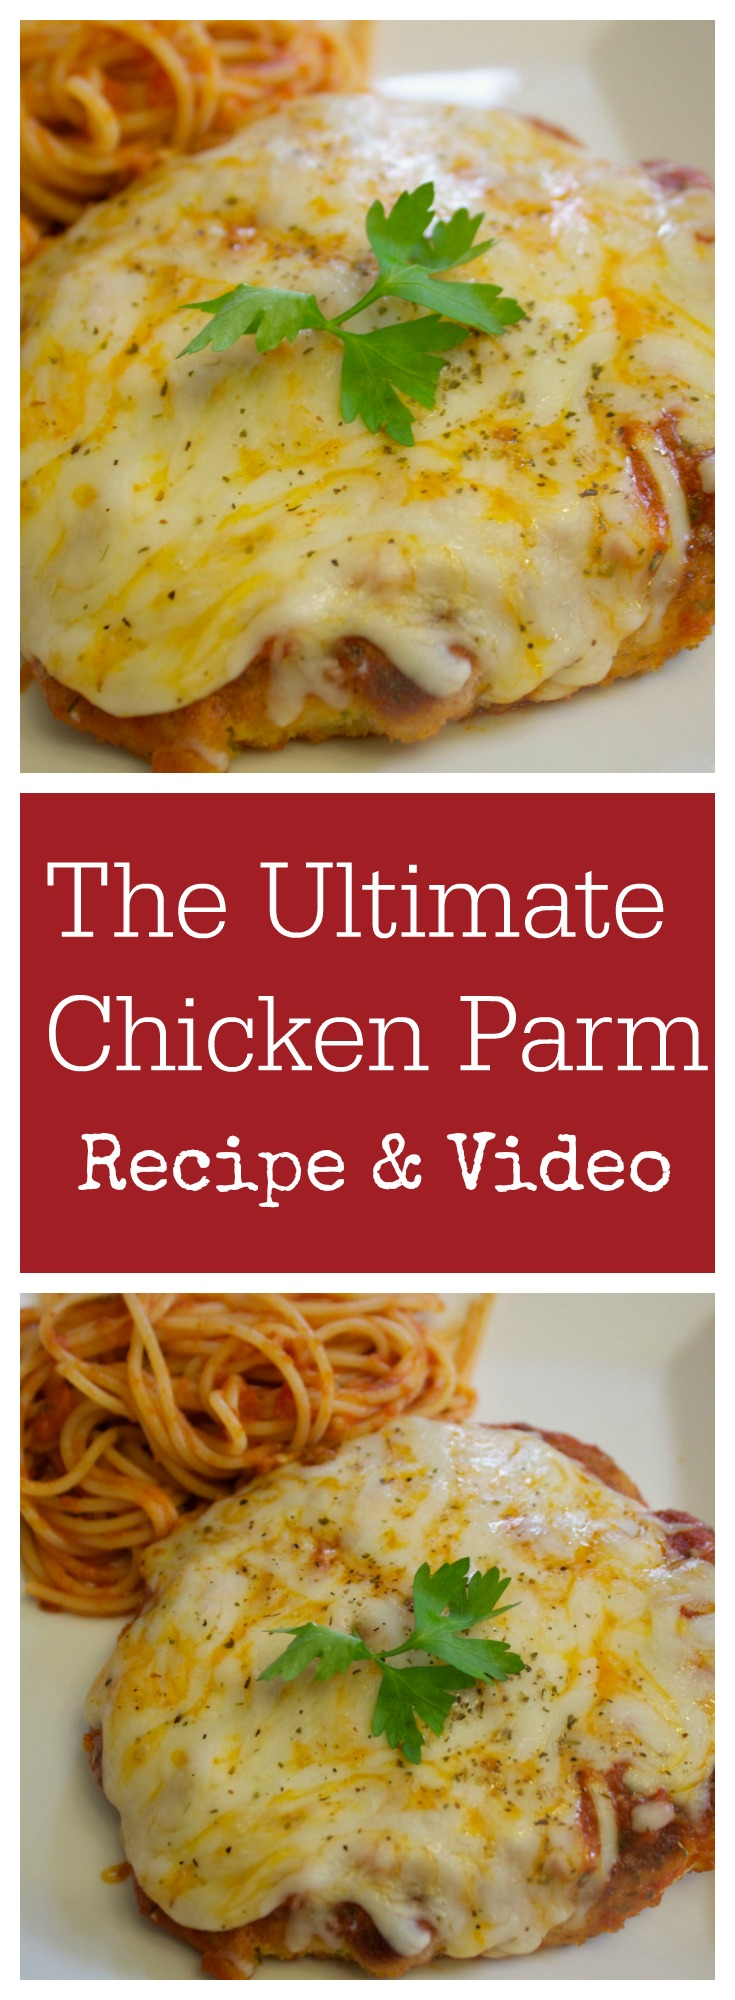 Cheesy Chicken Parmesan | The Ultimate Chicken Parm Recipe